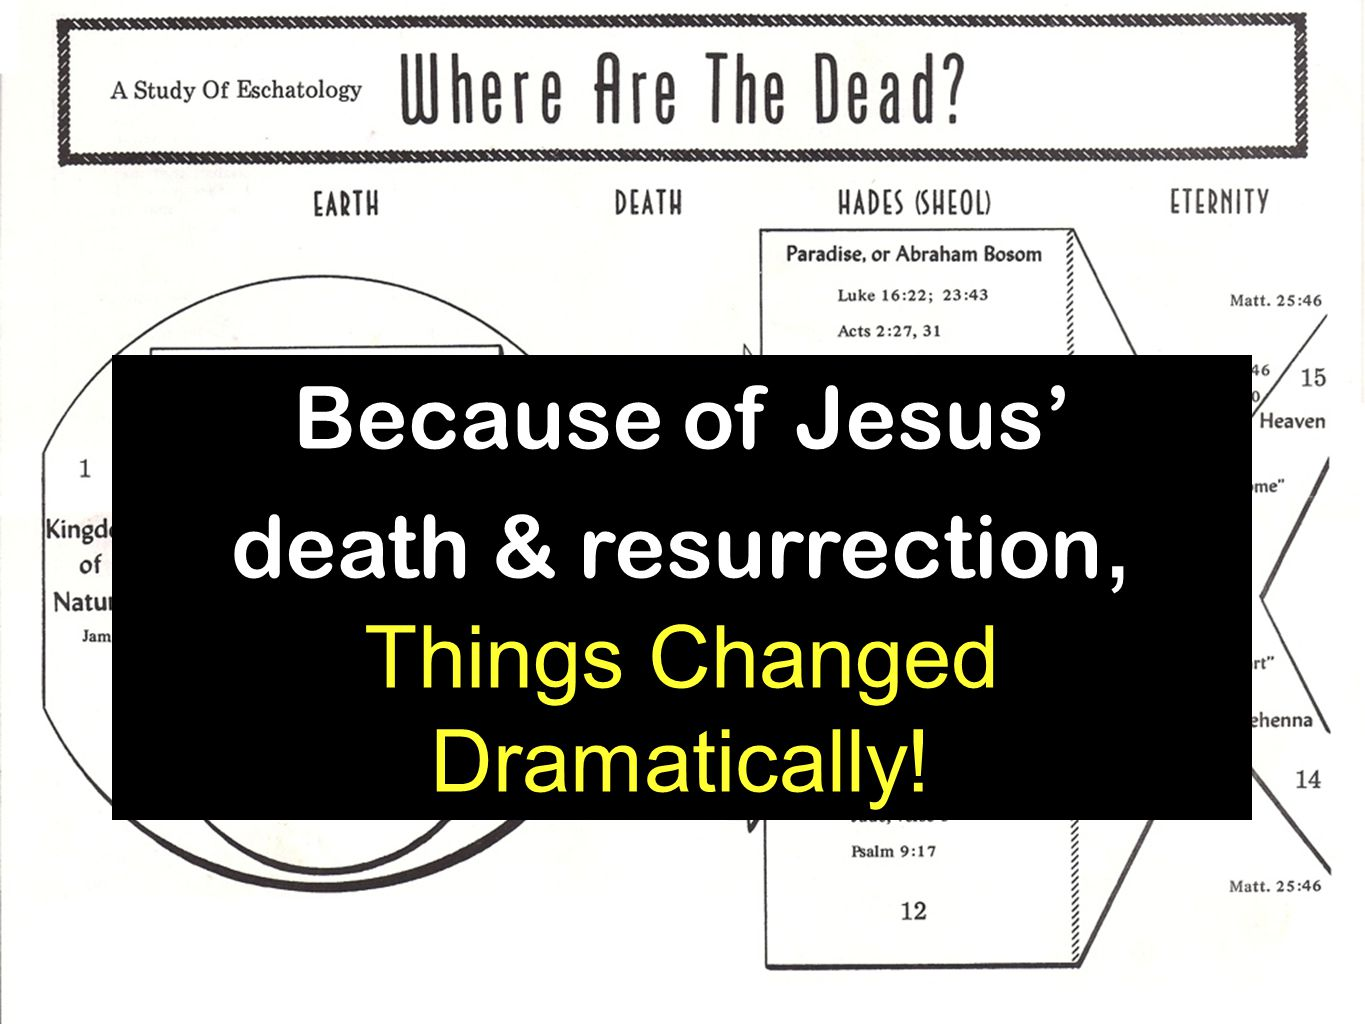 Because of Jesus' death & resurrection, Things Changed Dramatically!